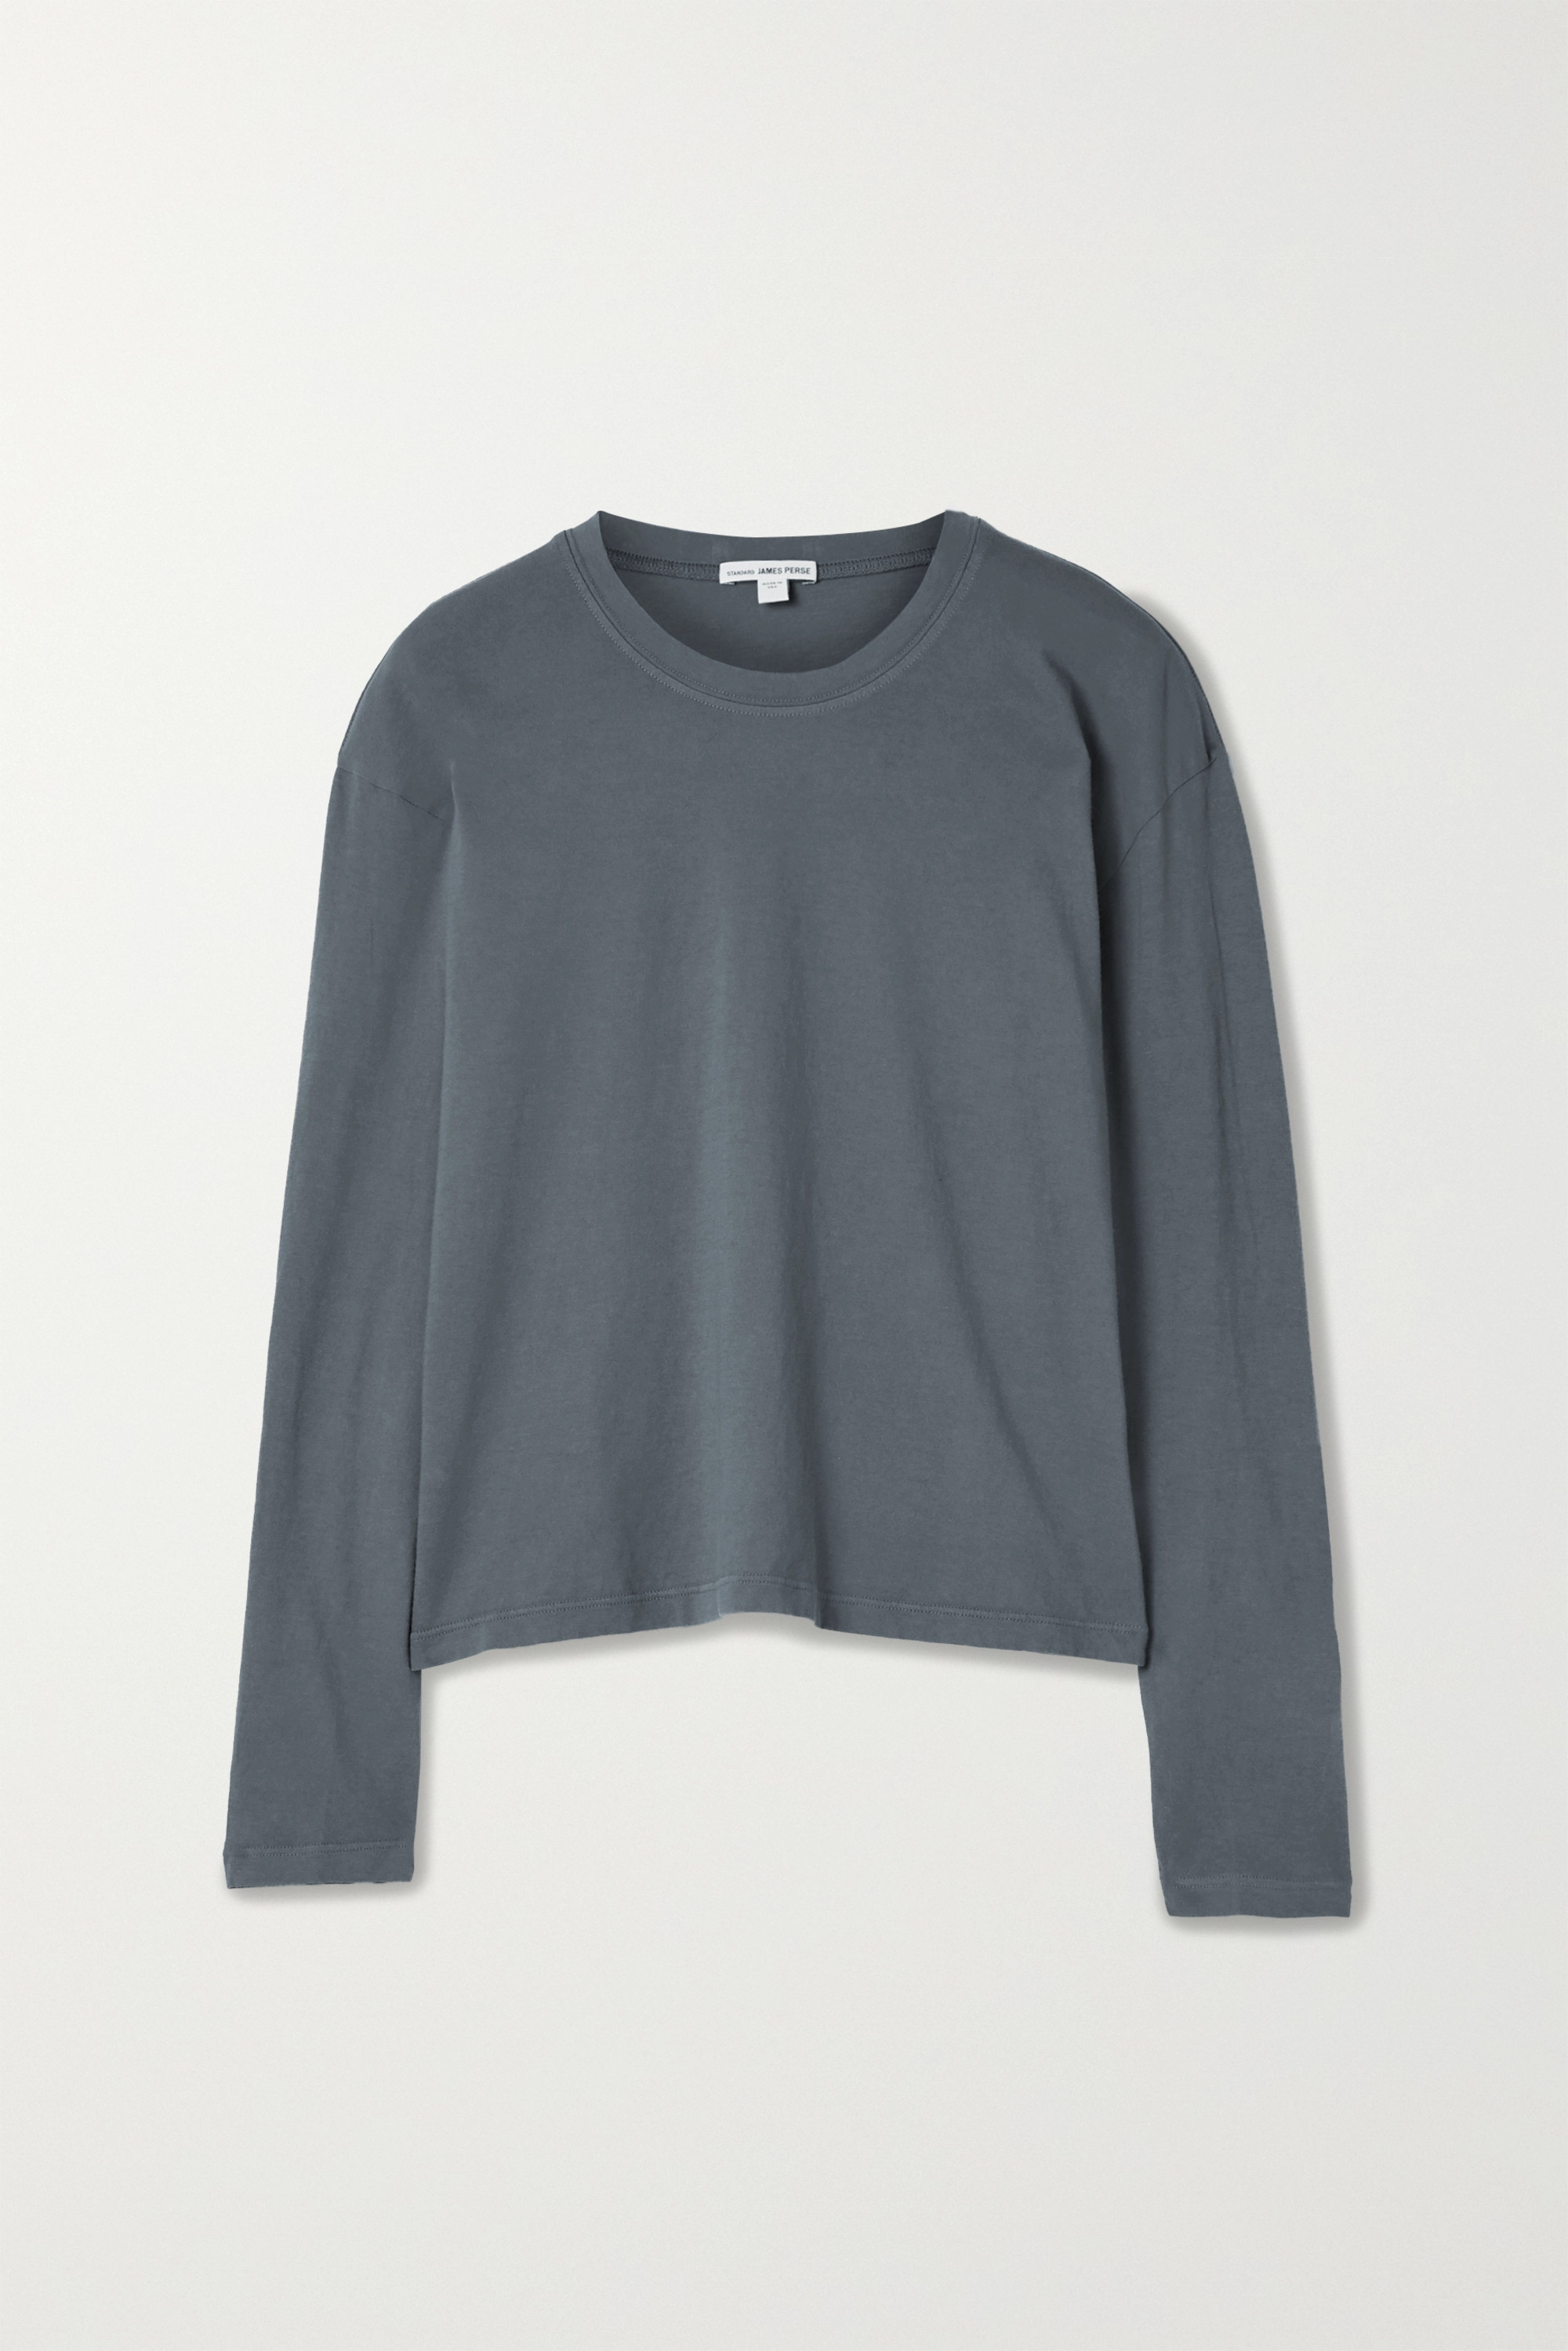 James Perse Supima cotton-jersey top